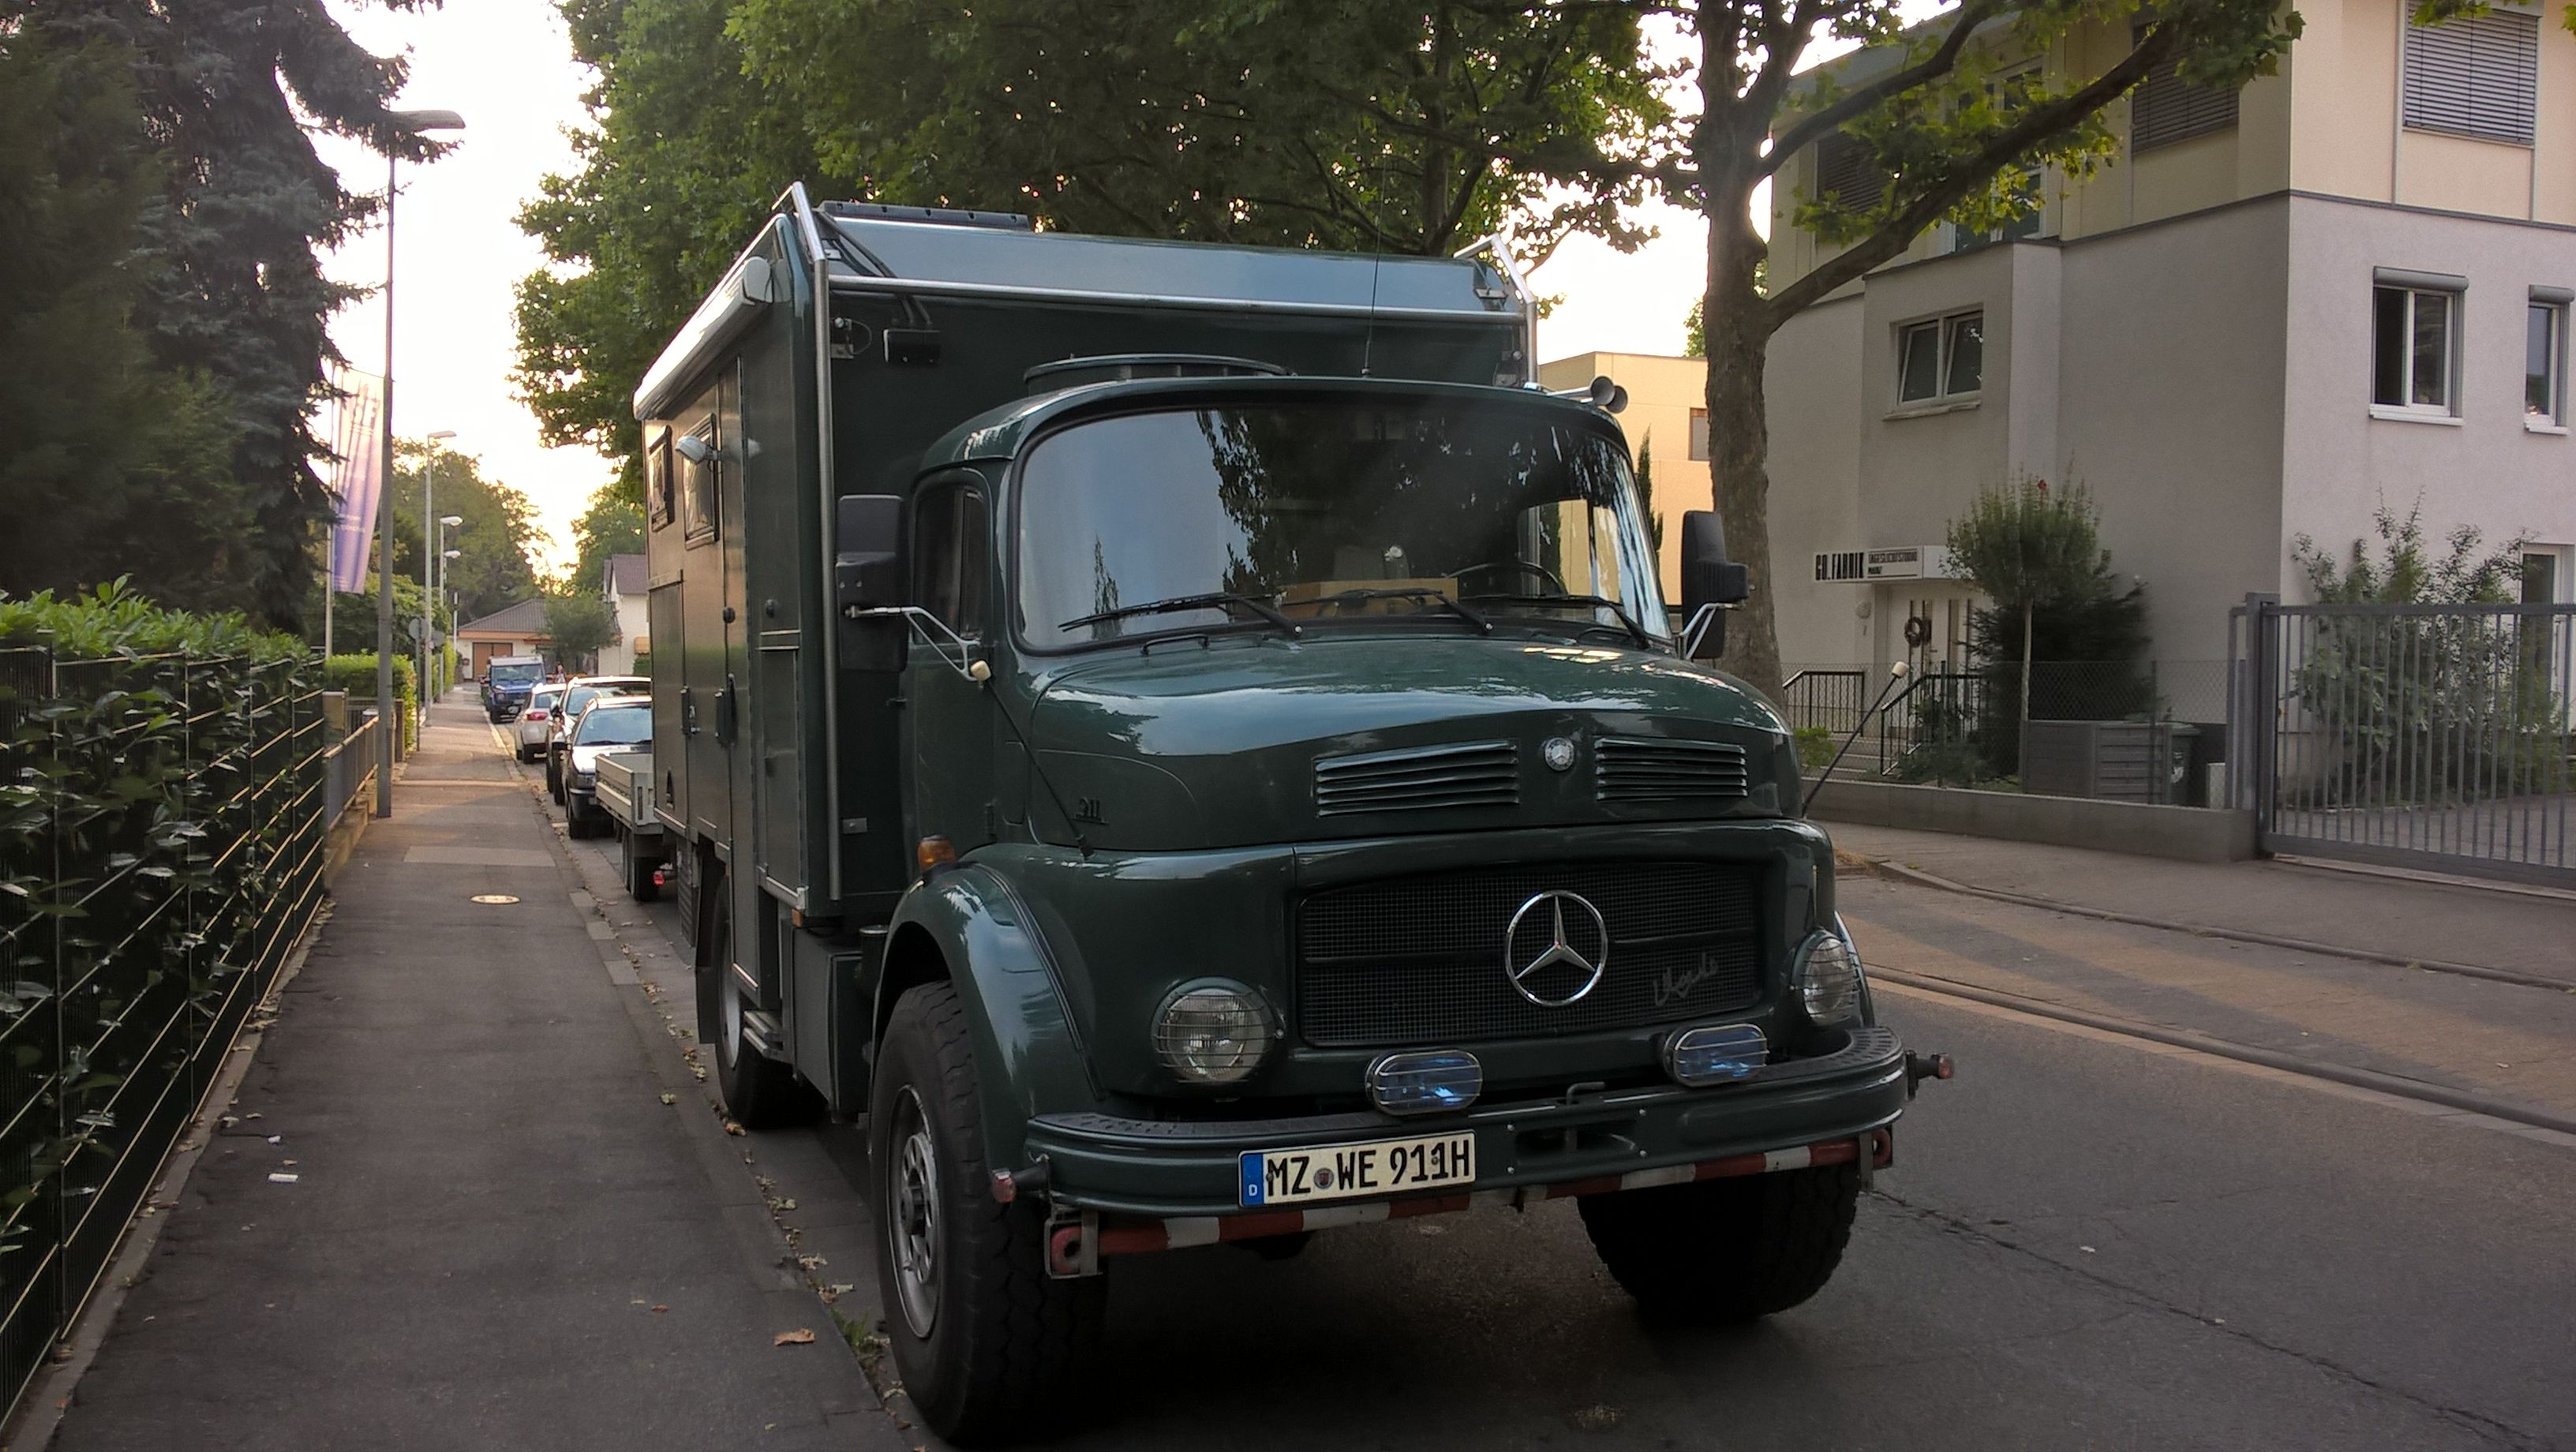 beautifully restored mercedes benz 911b ex army or police. Black Bedroom Furniture Sets. Home Design Ideas